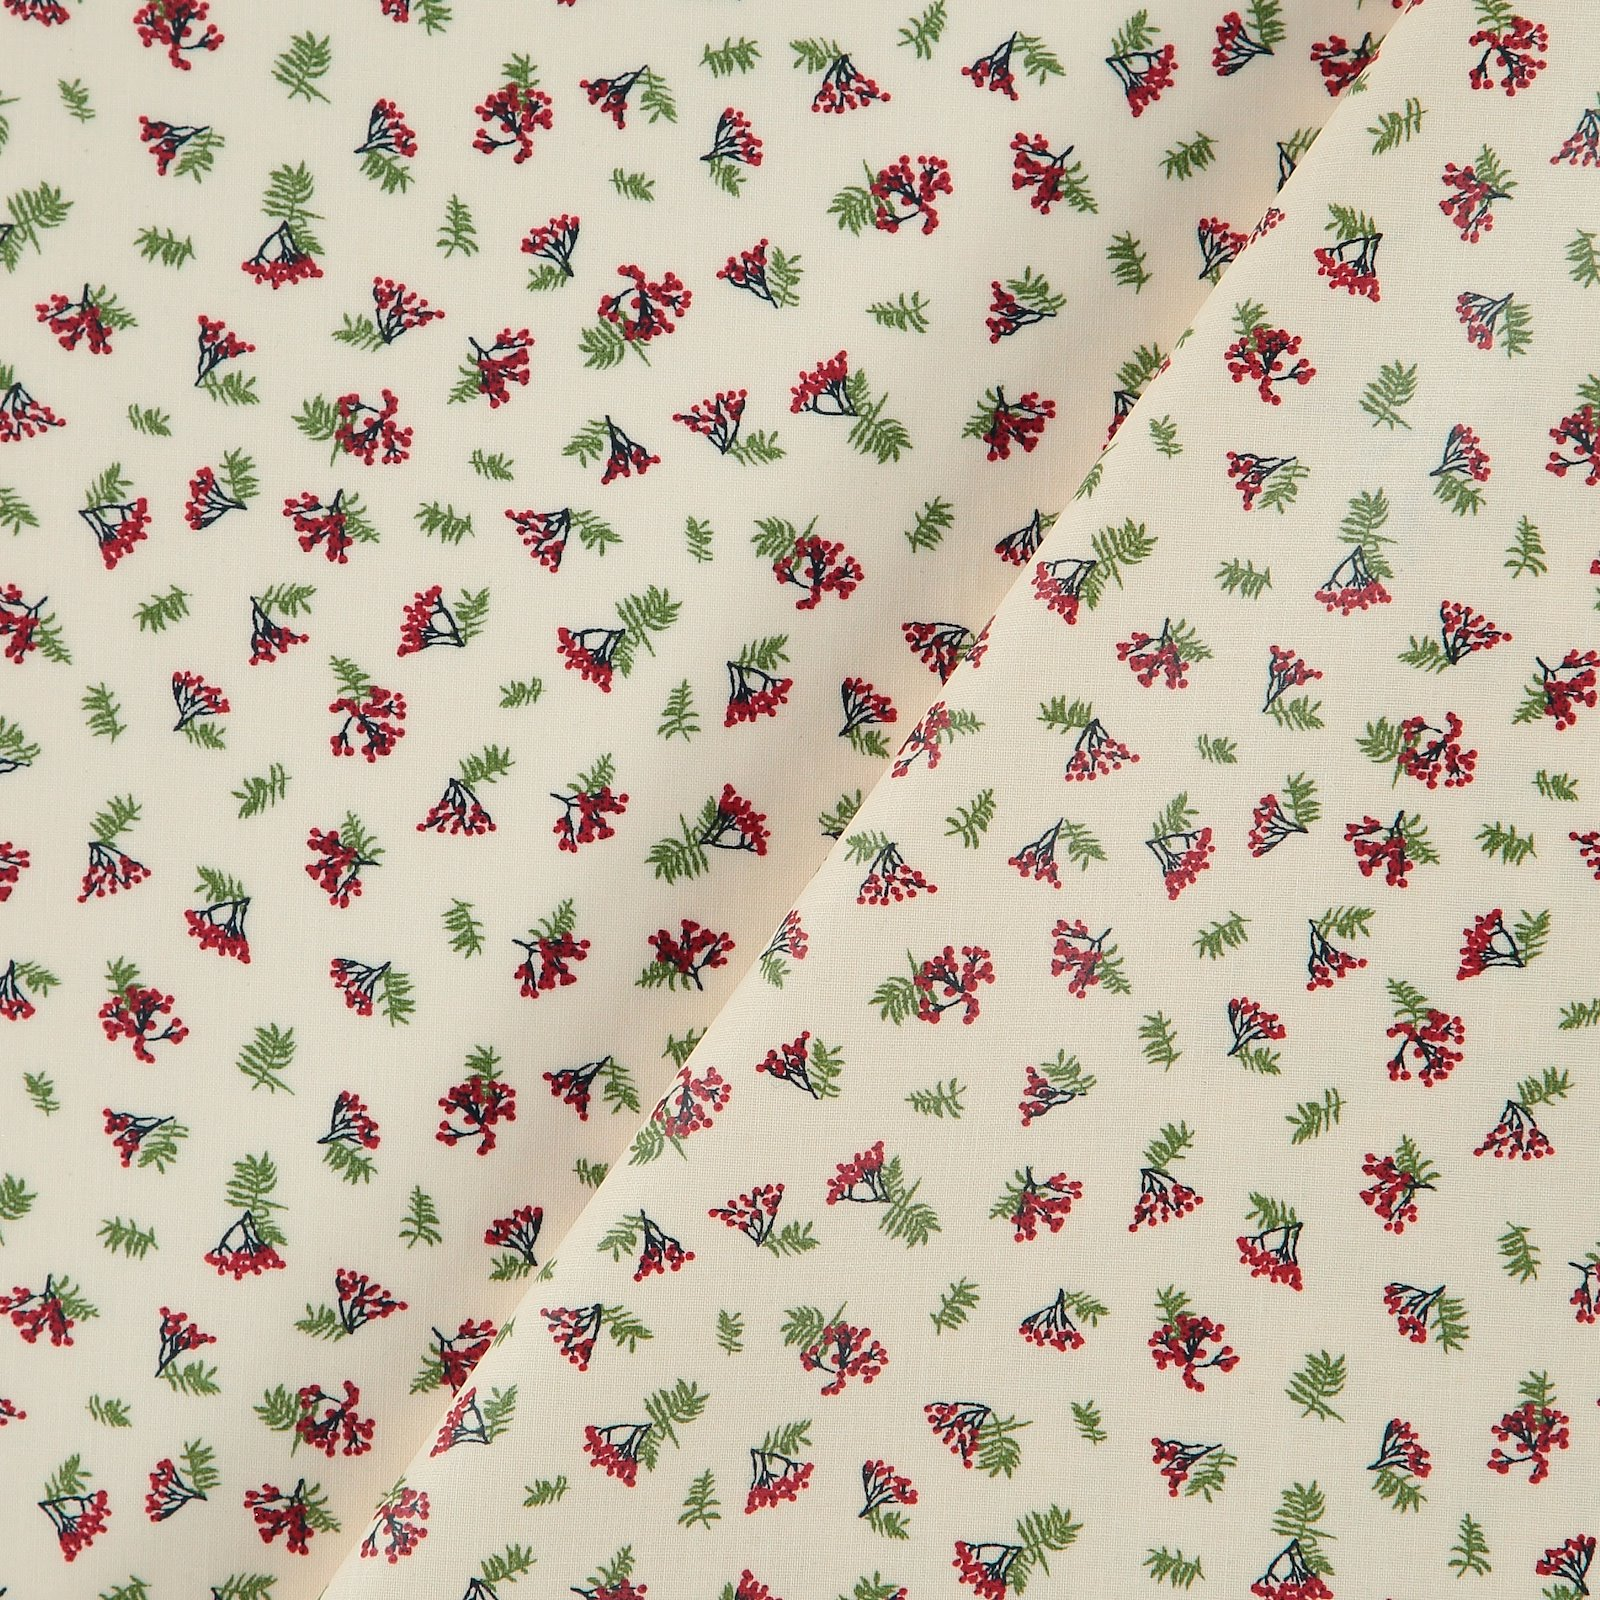 Woven oil cloth offwhite w red berries 866133_pack